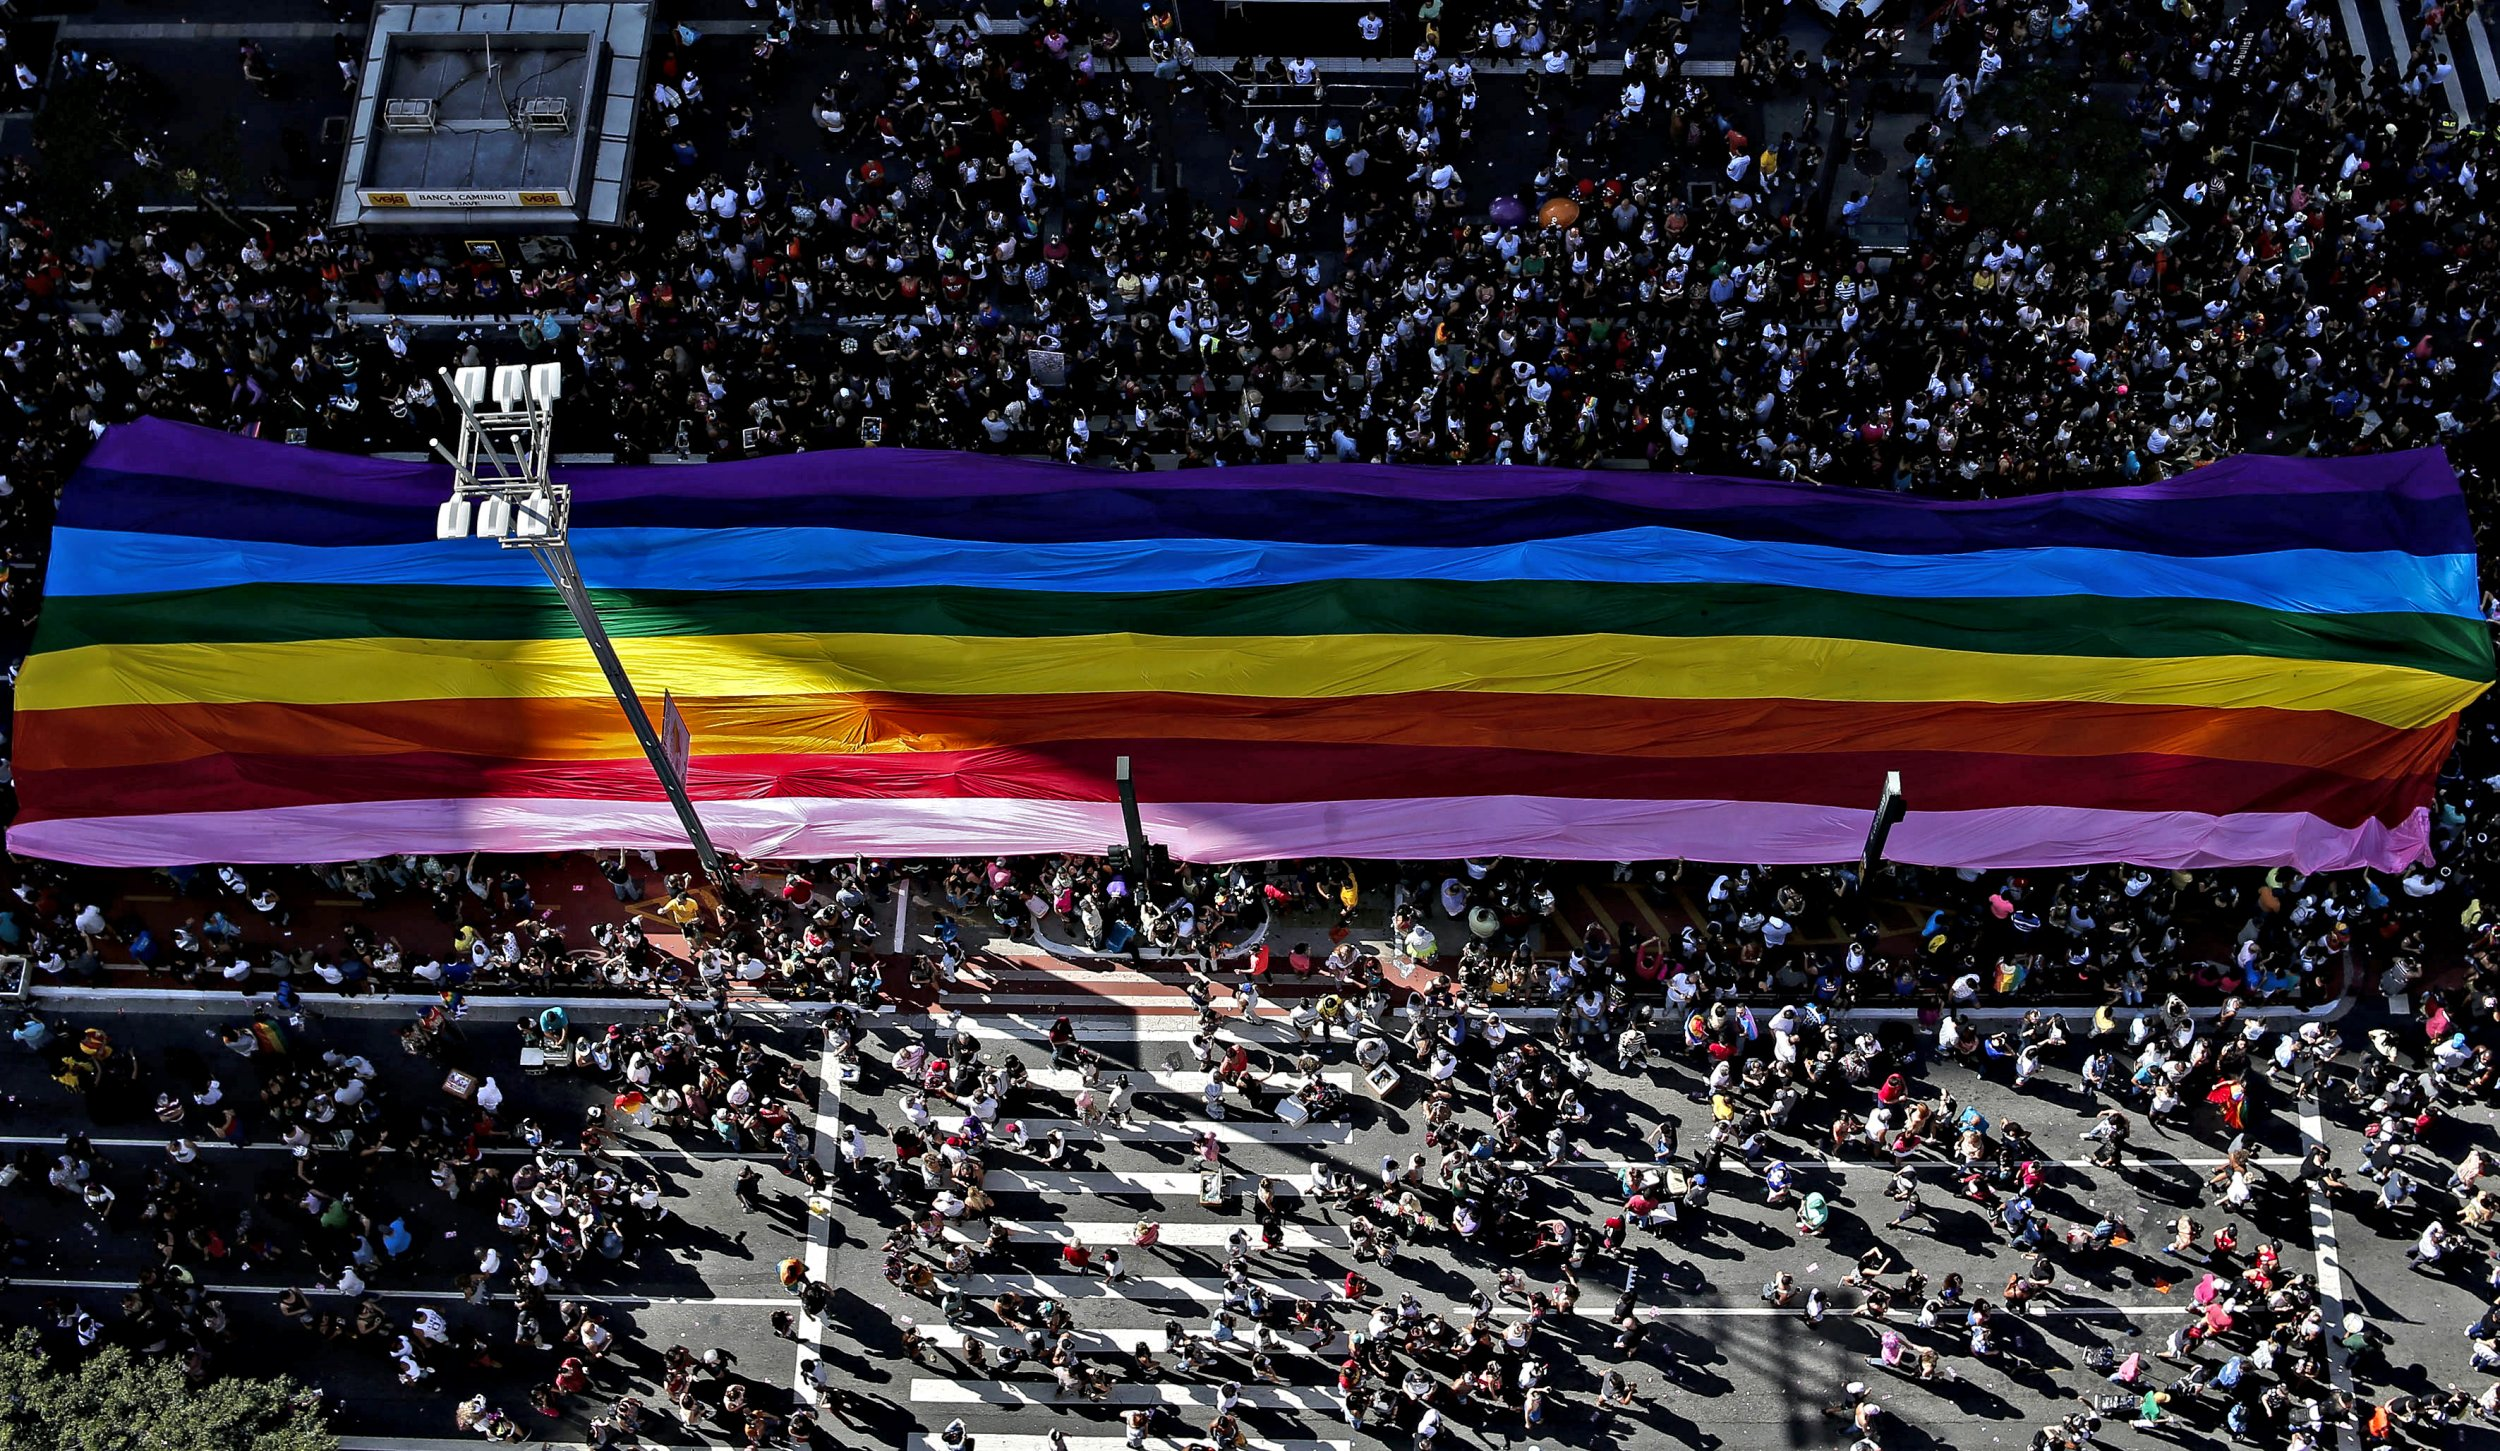 Sao Paulo Has One of the World's Biggest Pride Parades